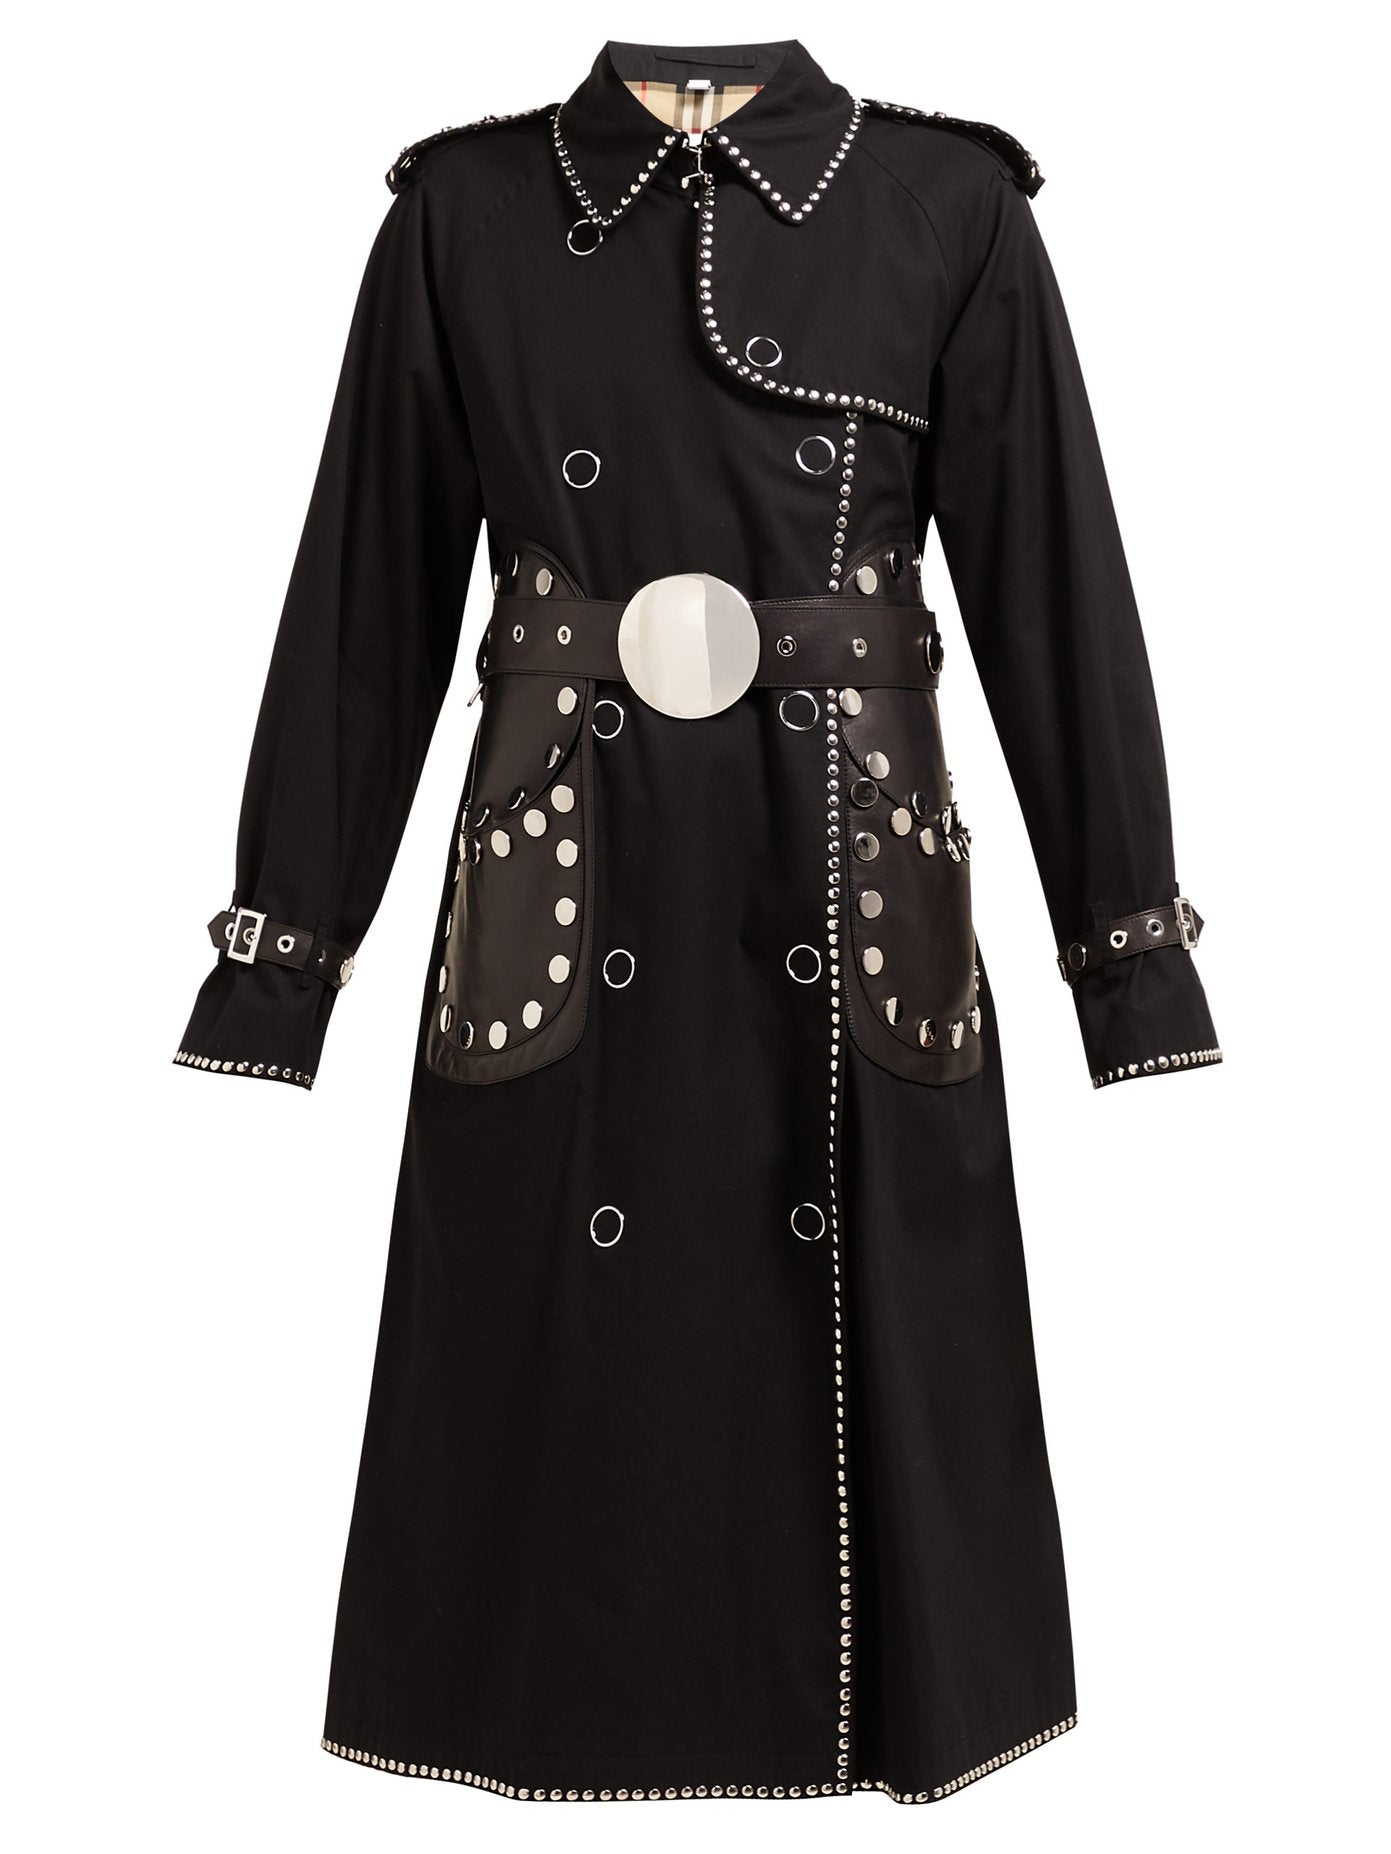 Burberry - Silver studded black trench